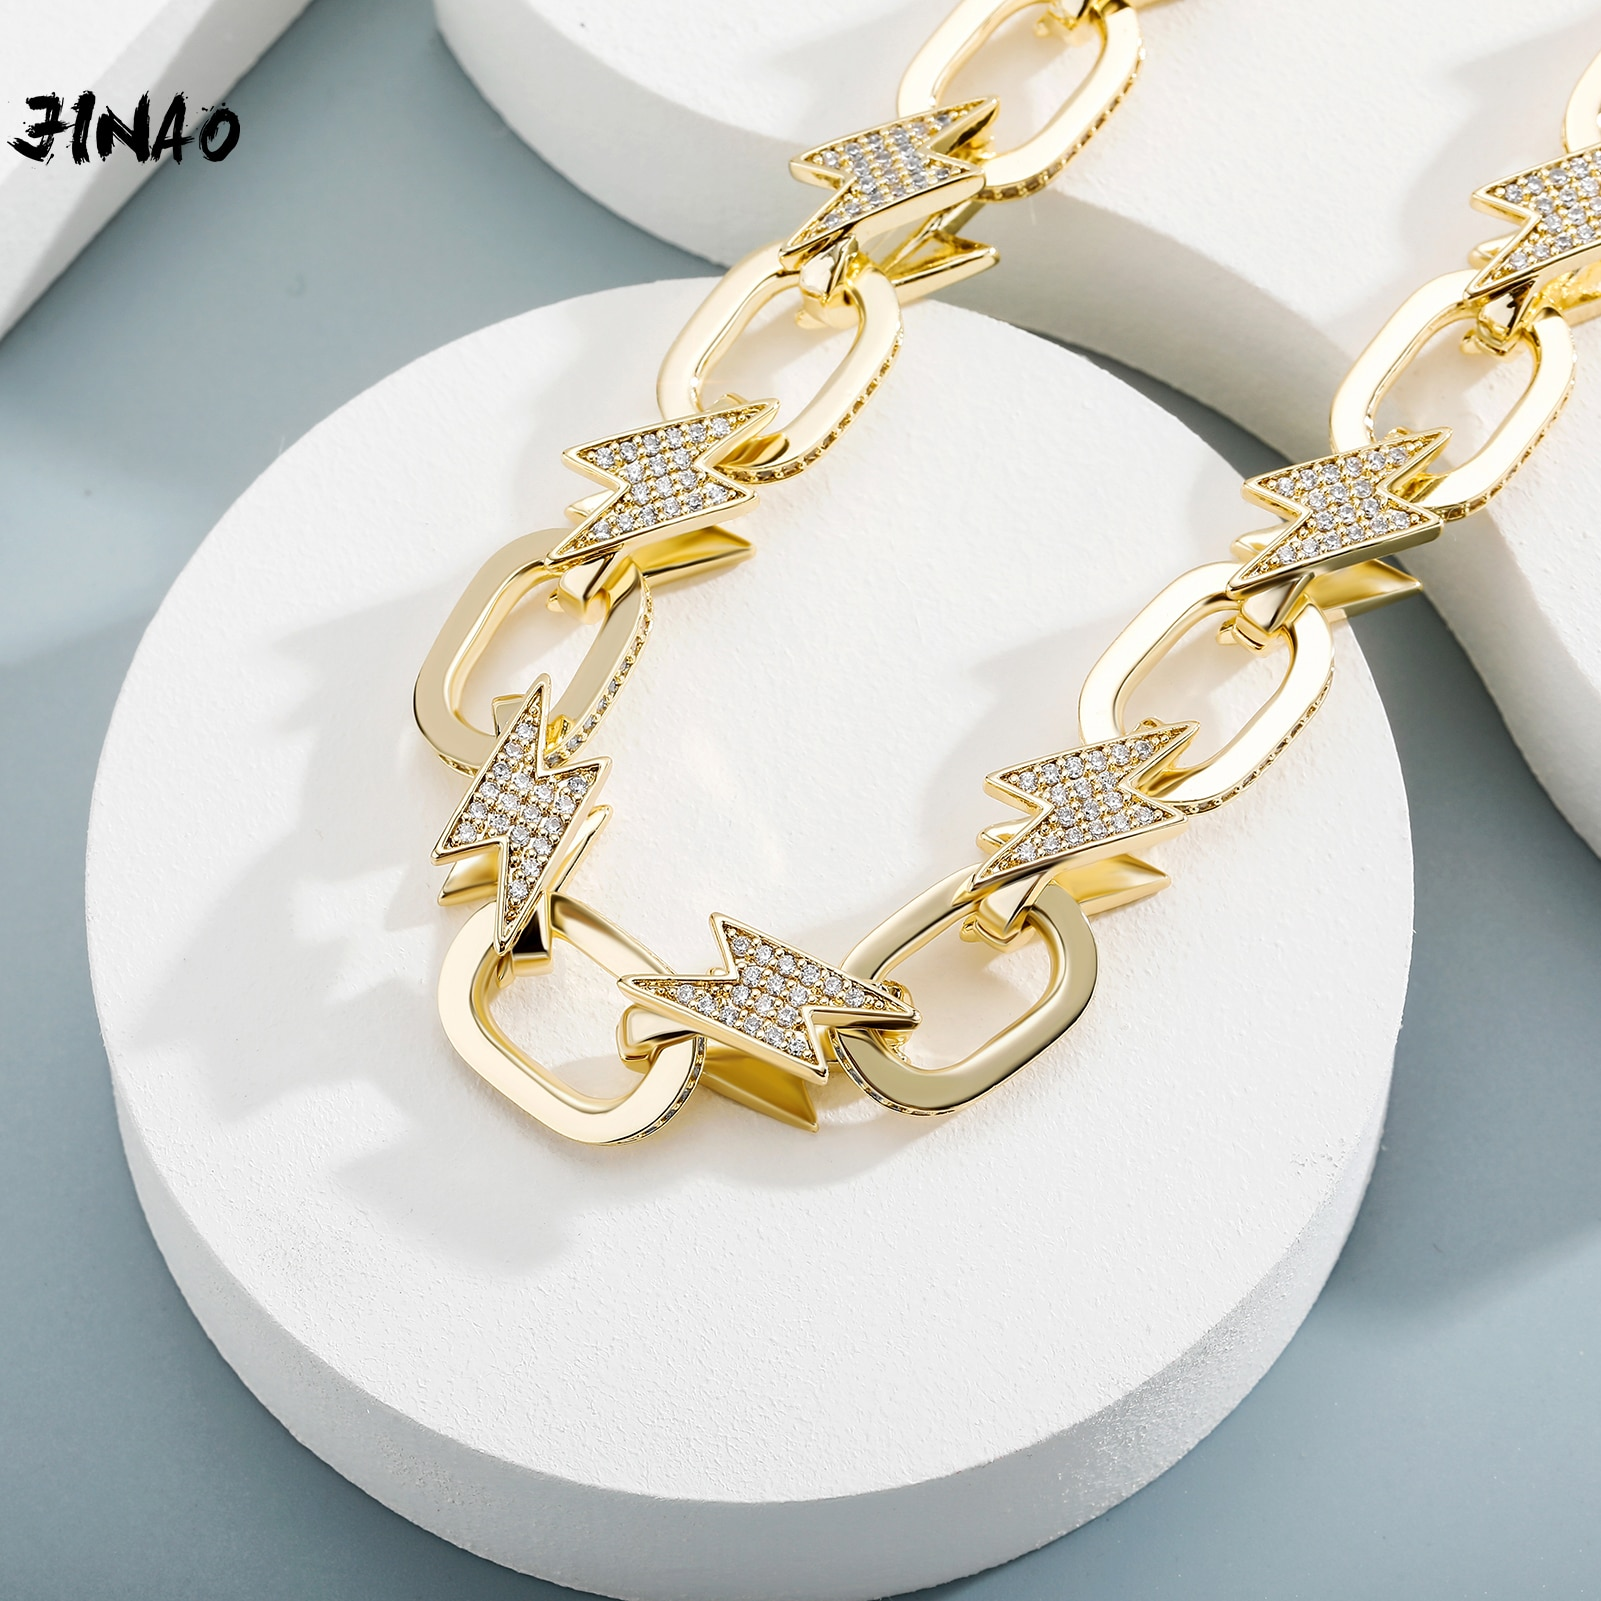 Get JINAO 2021 NEW Fashion Miami Spring Clasp Cuban Link Chain Lightning Necklace Charm Iced Out AAA+ Cubic Zirconia for Men Jewelry